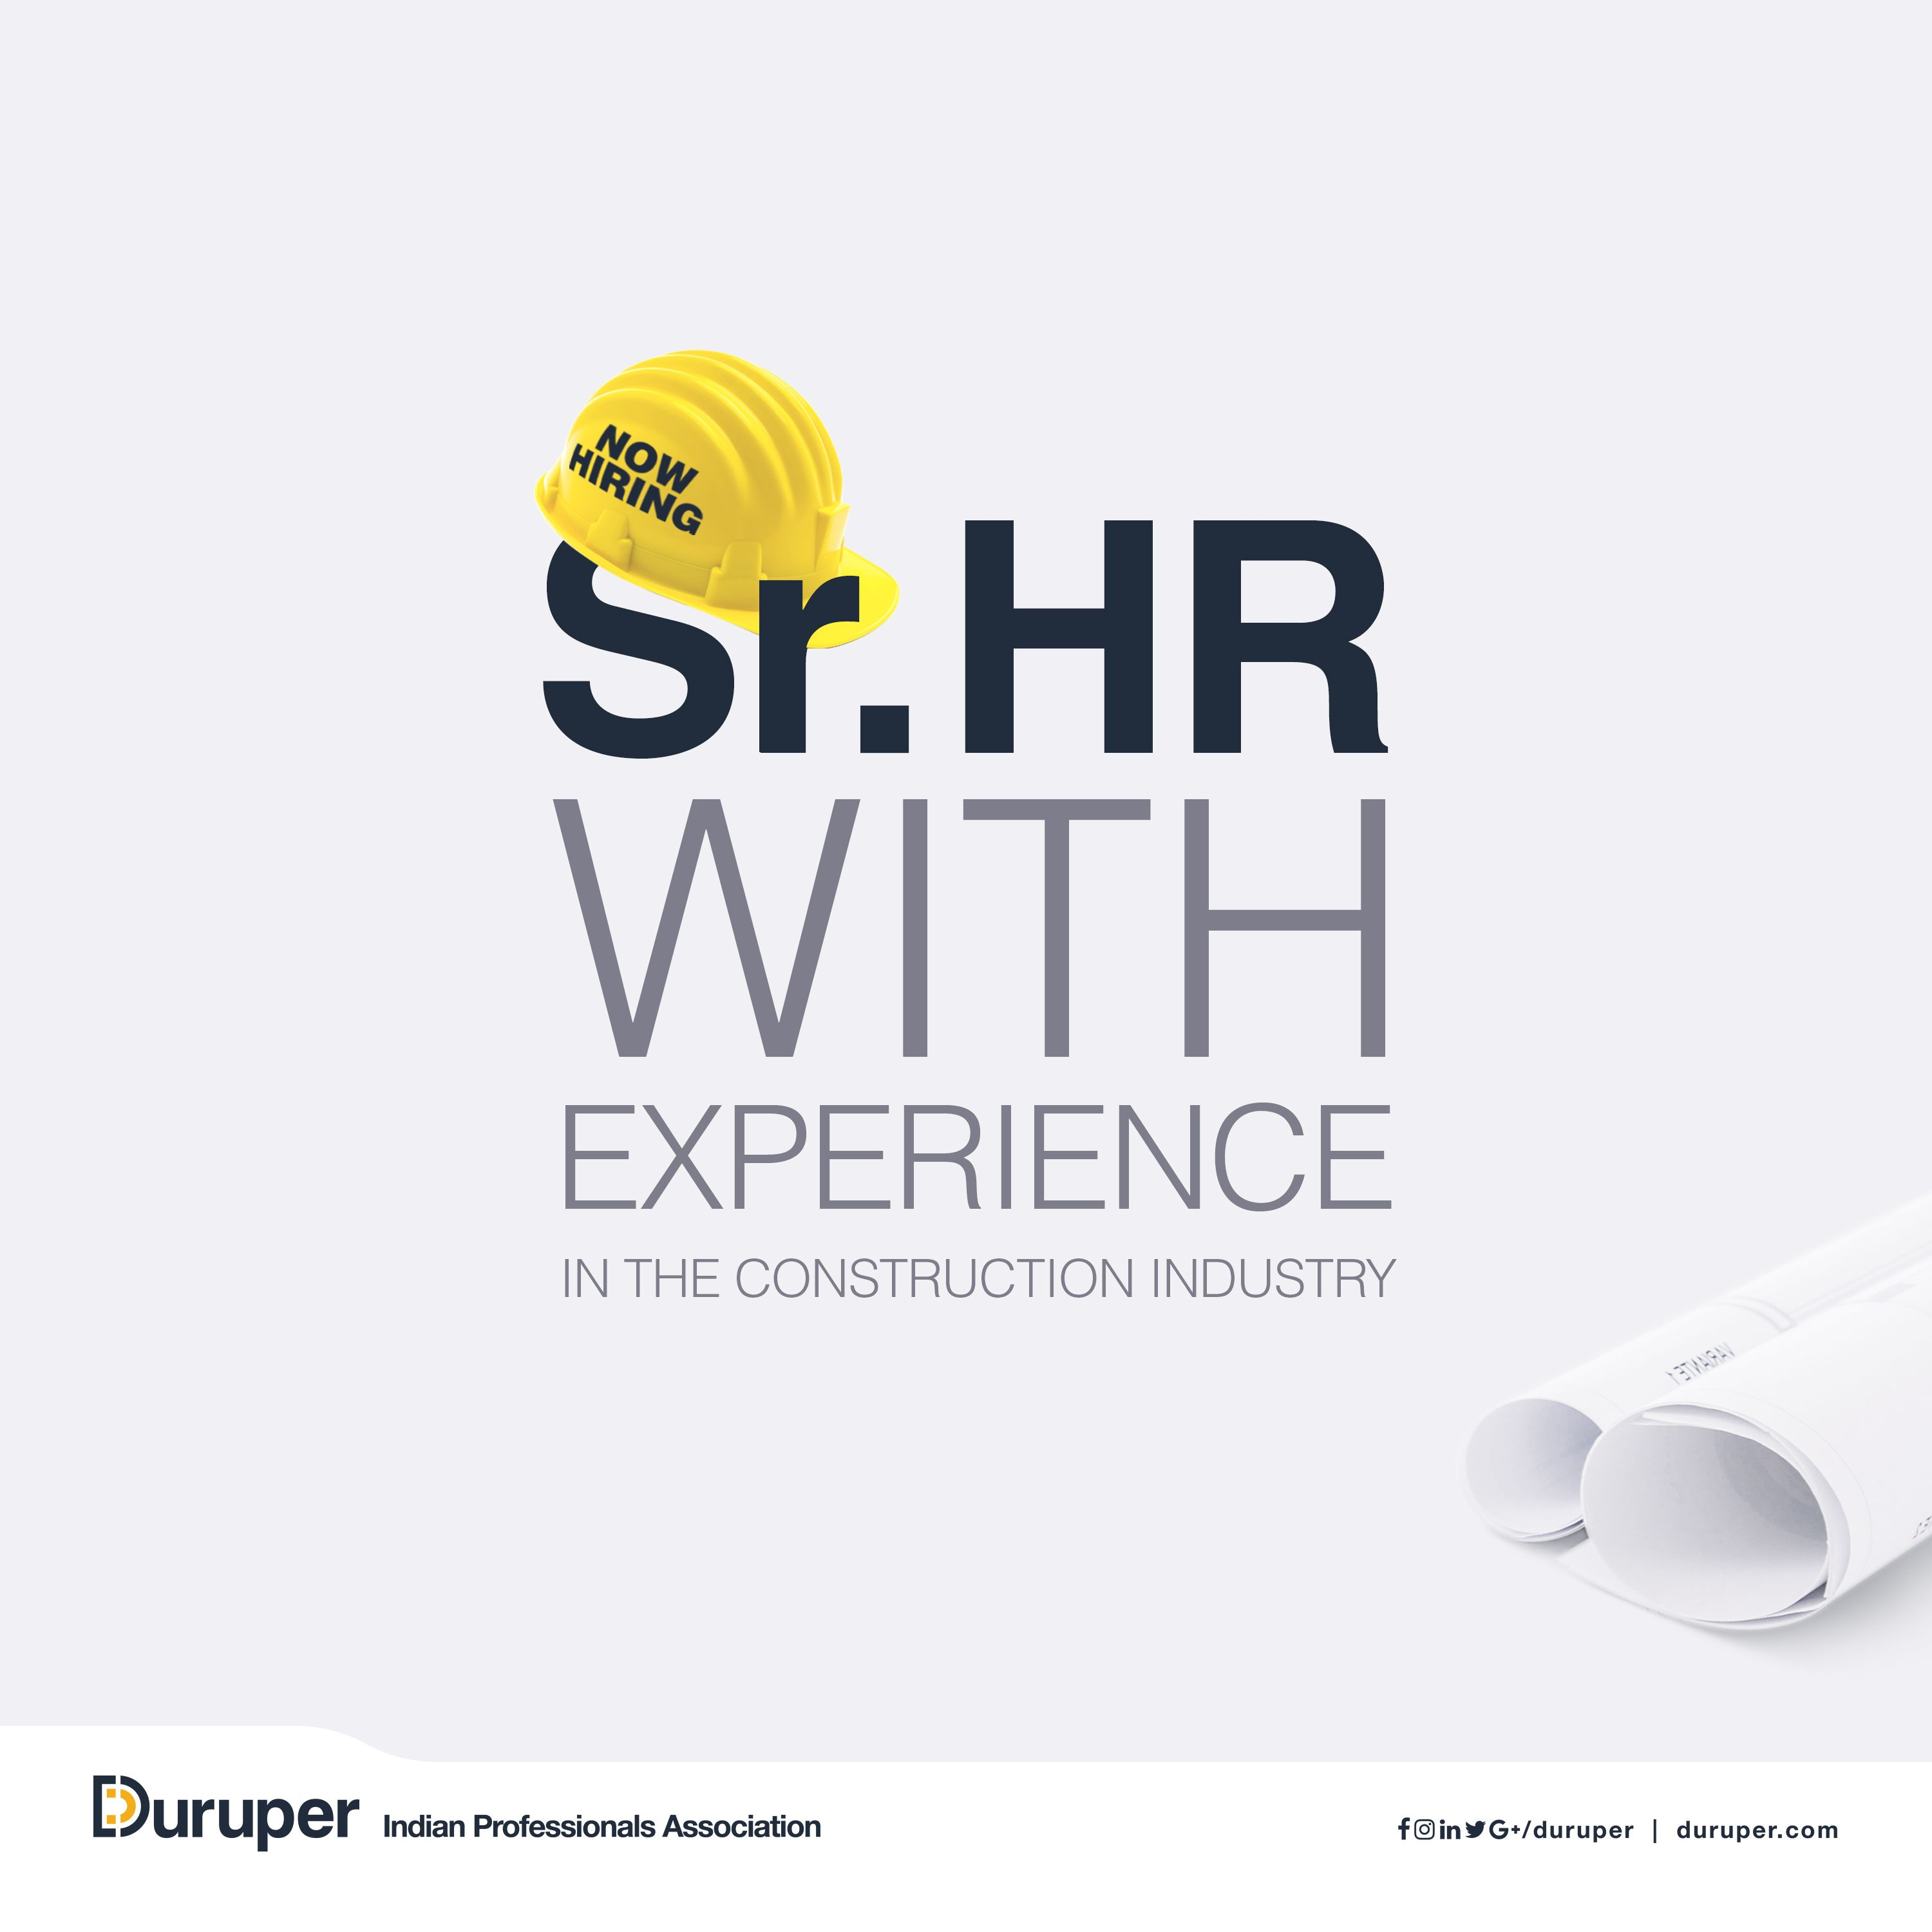 Do you have HR experience in a construction environment